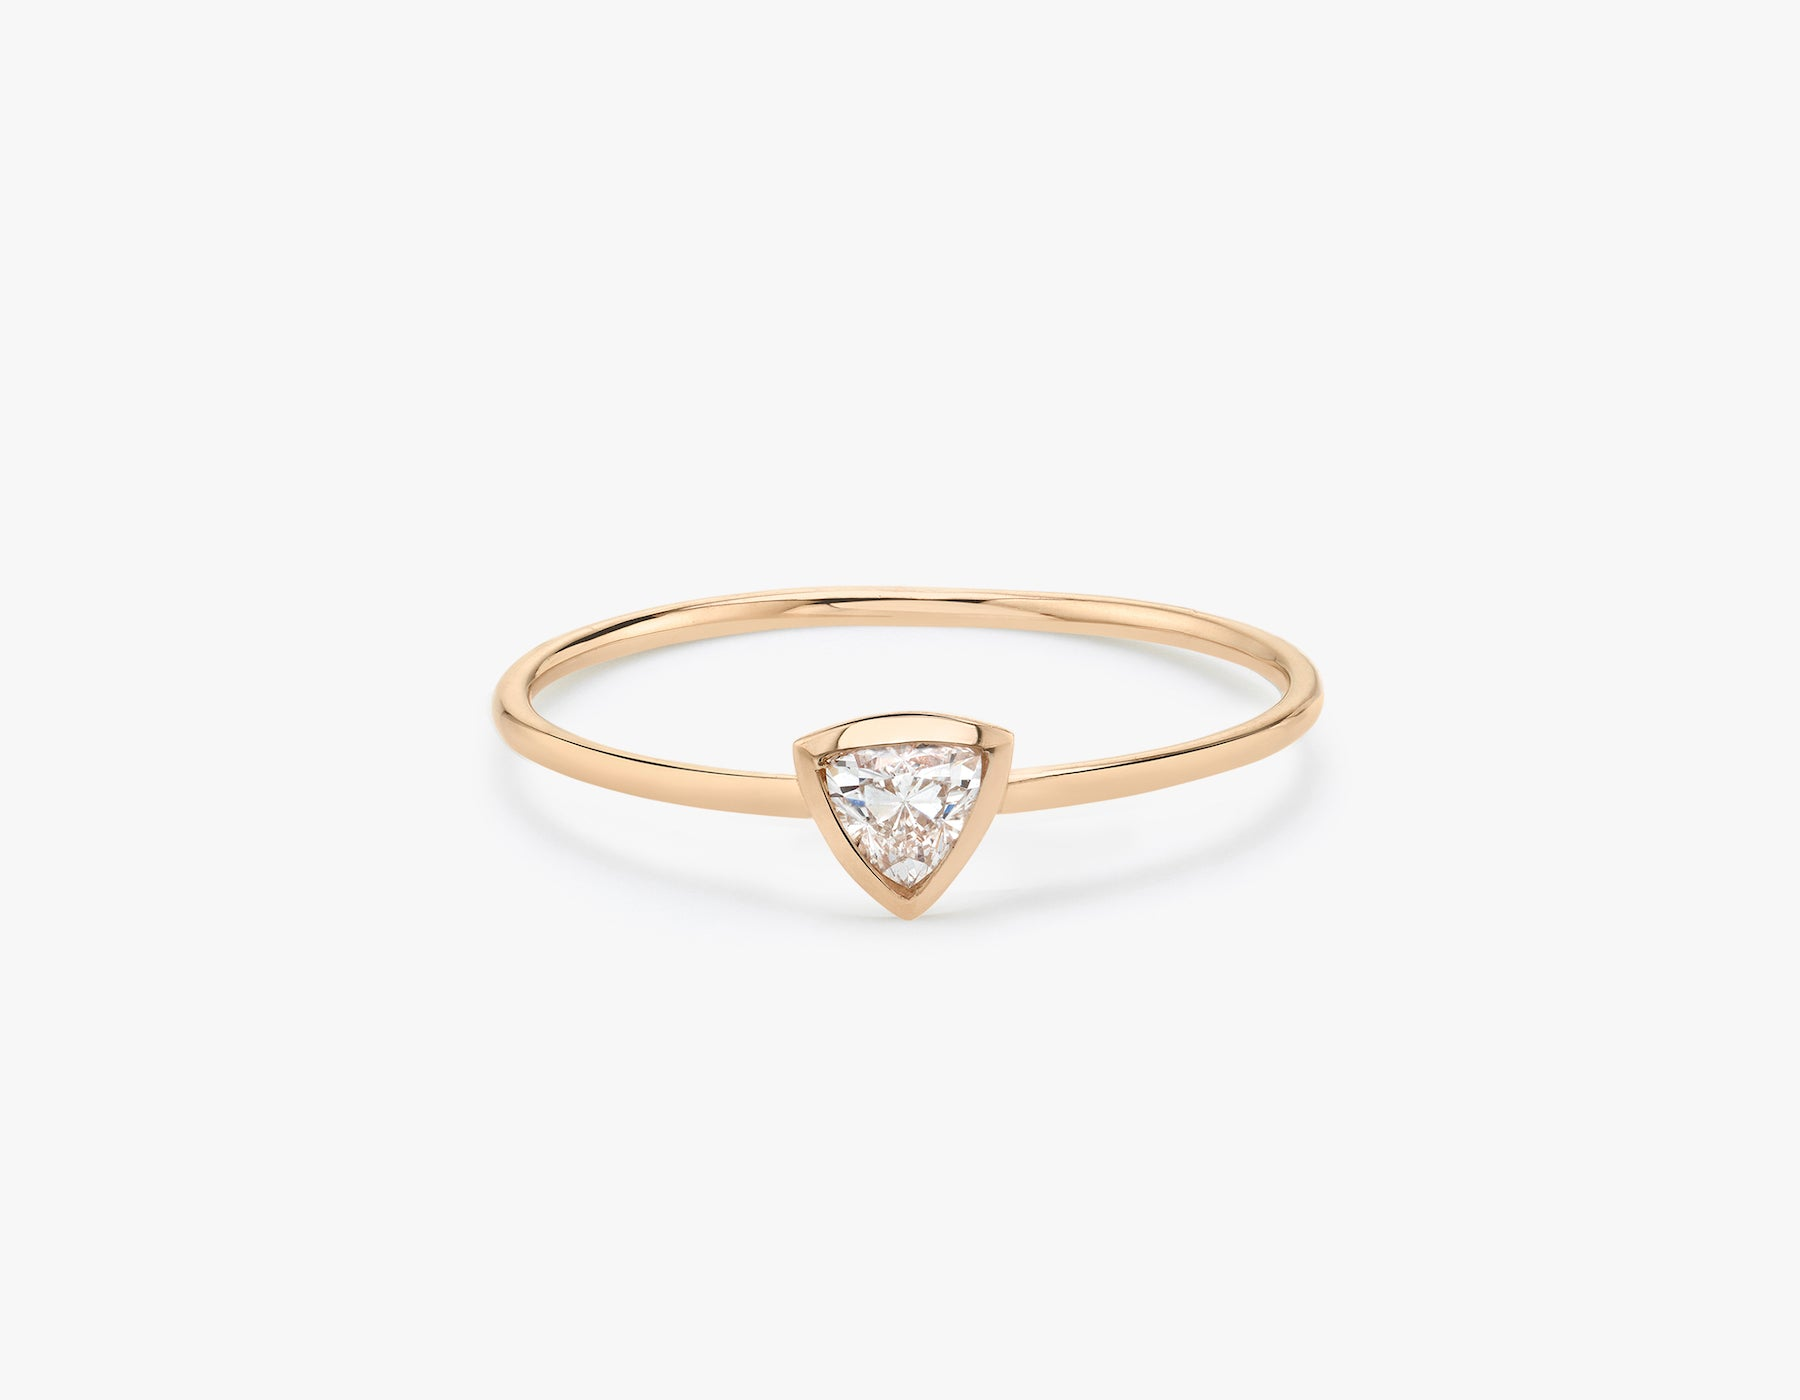 Vrai classic minimalist Trillion Diamond Bezel Ring, 14K Rose Gold